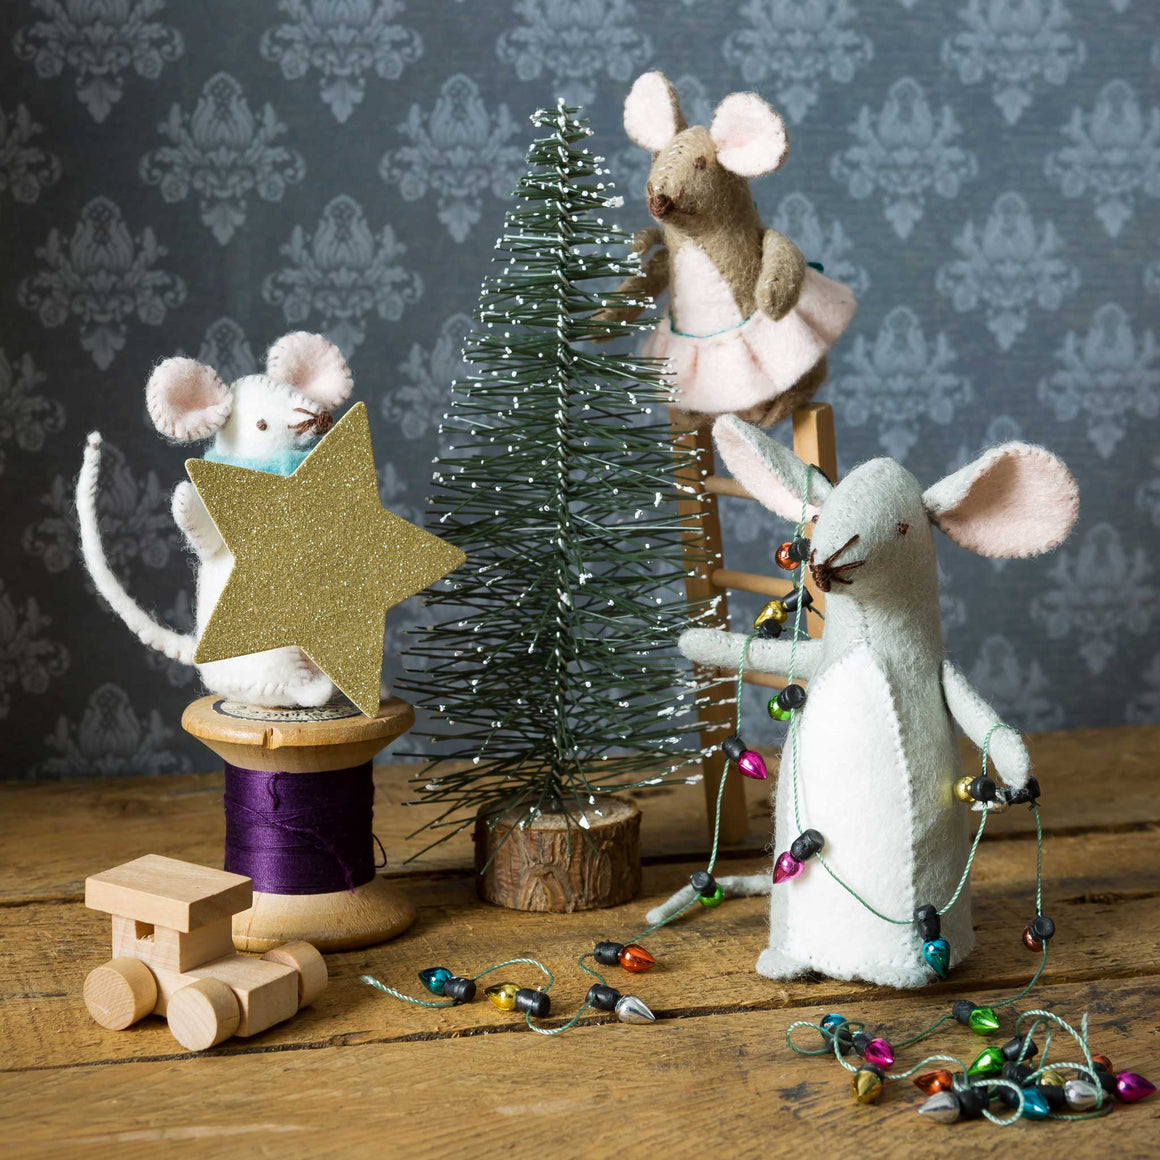 Mouse Family Christmas Card by Corinne Lapierre